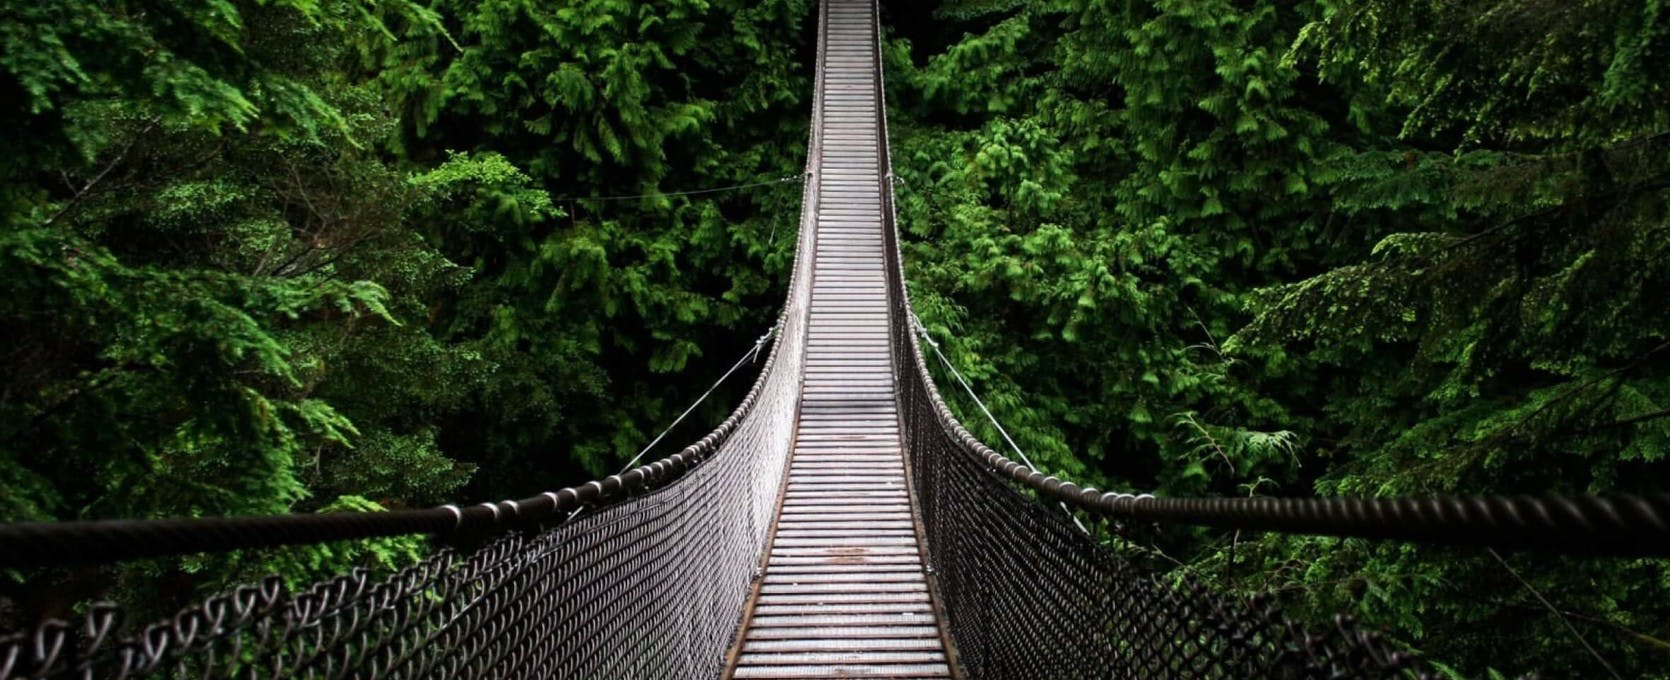 Suspended bridge over the canopy